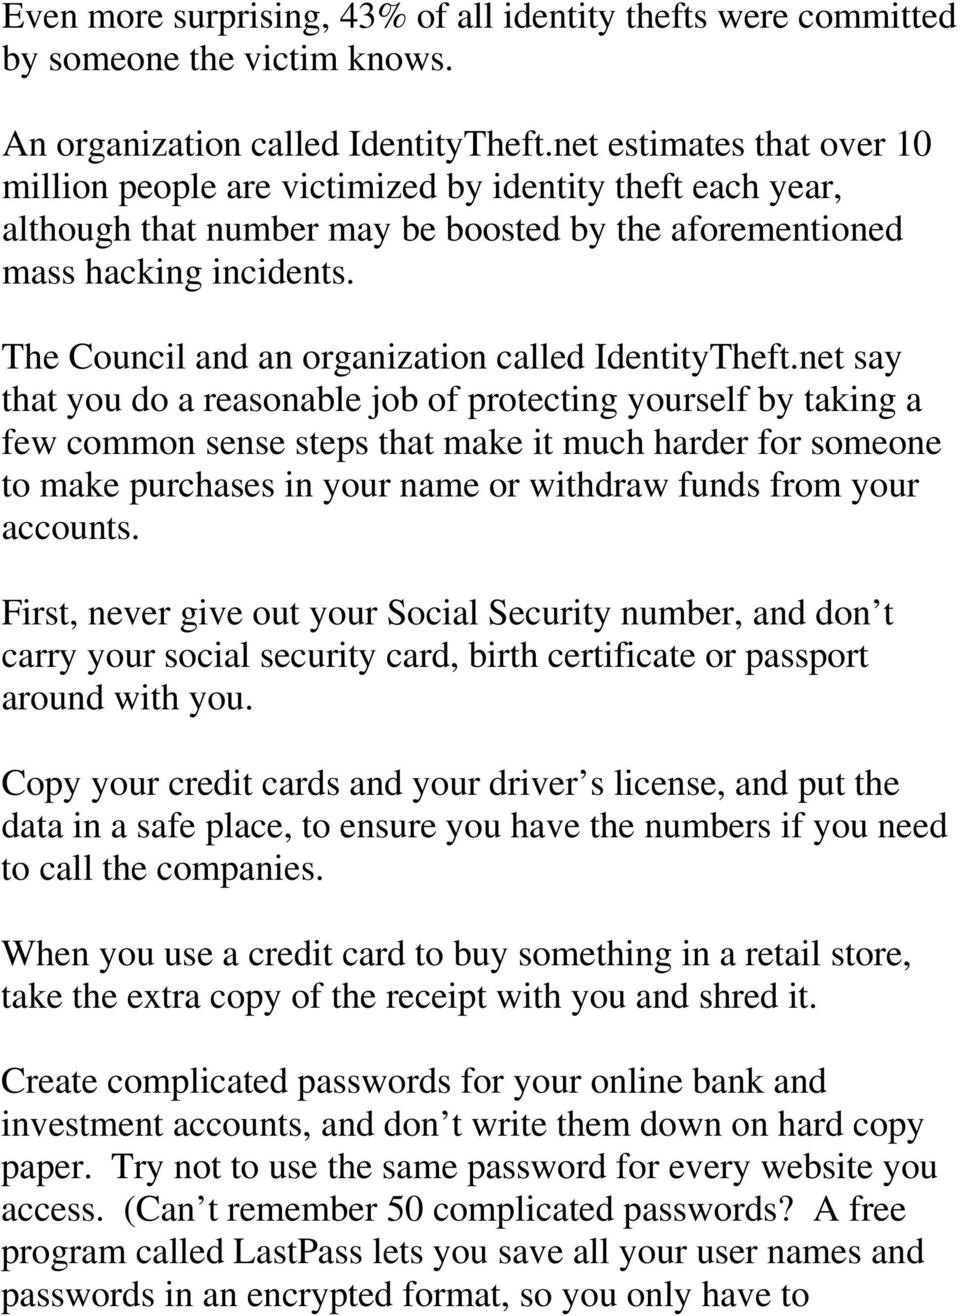 The Council and an organization called IdentityTheft.